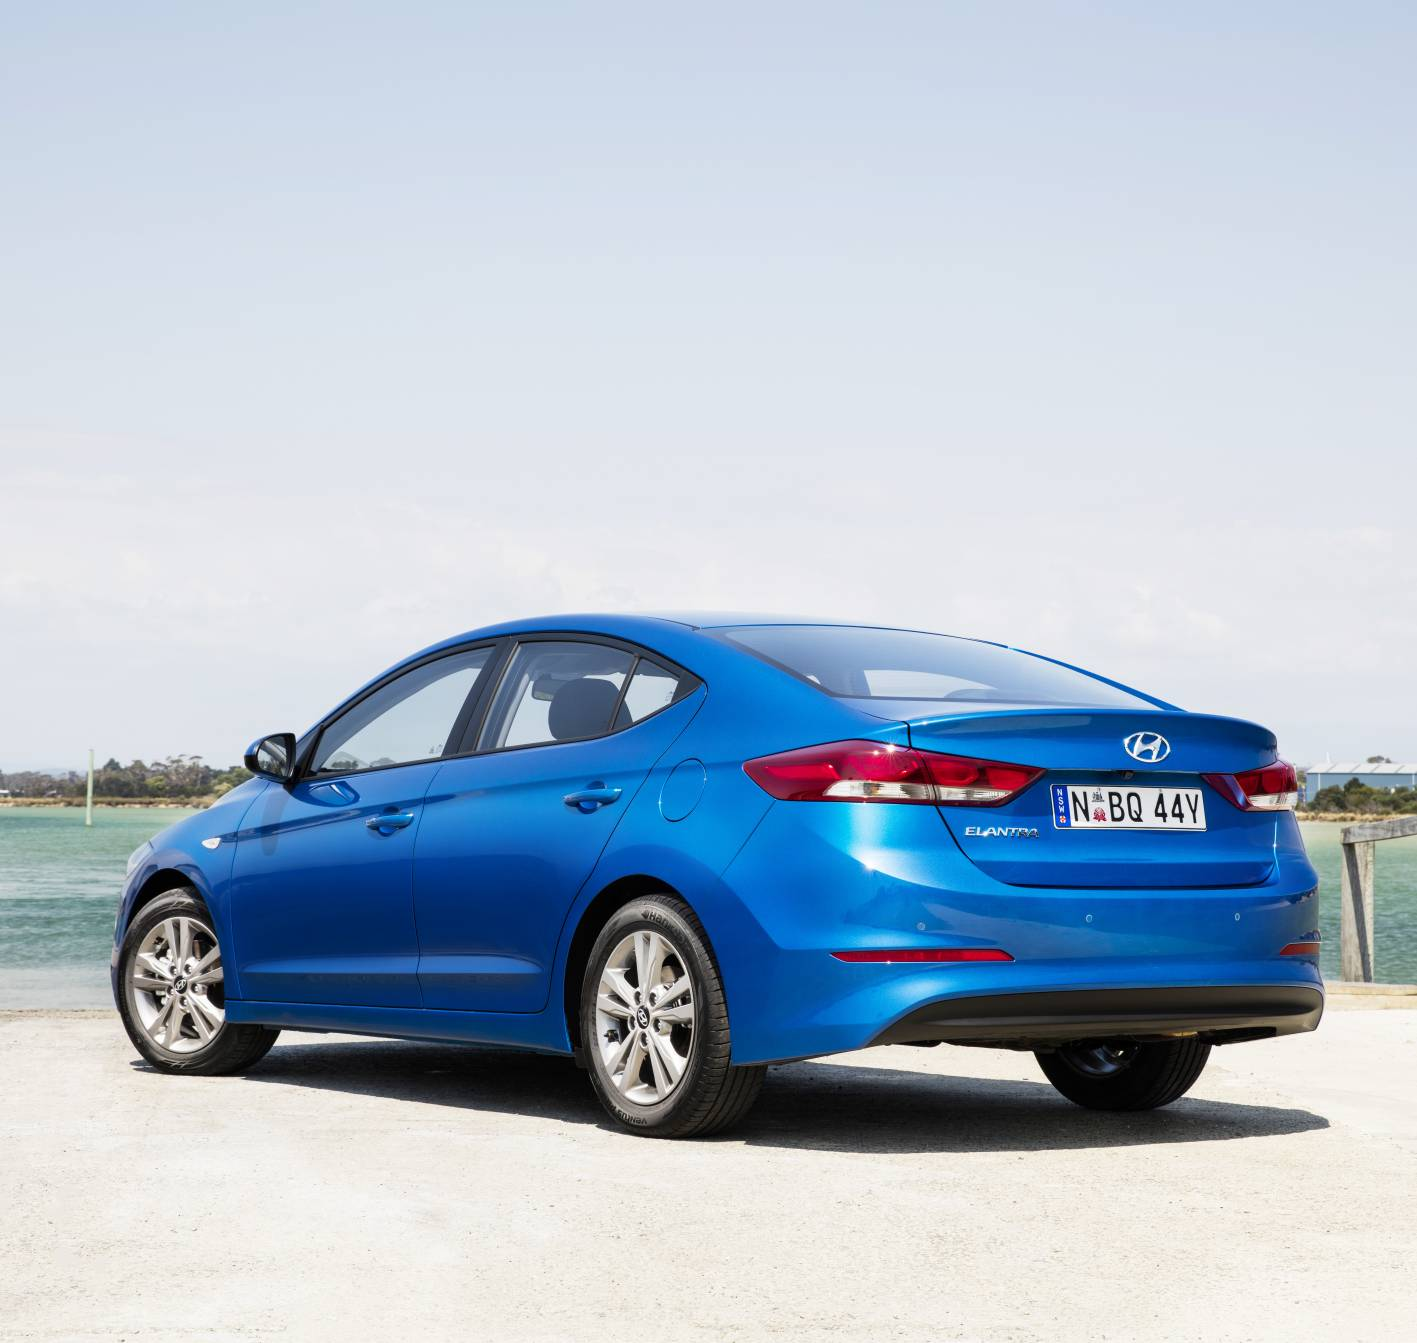 2017 Hyundai Elantra Gt Transmission: All-new 2016 Hyundai Elantra Comes Further Refined